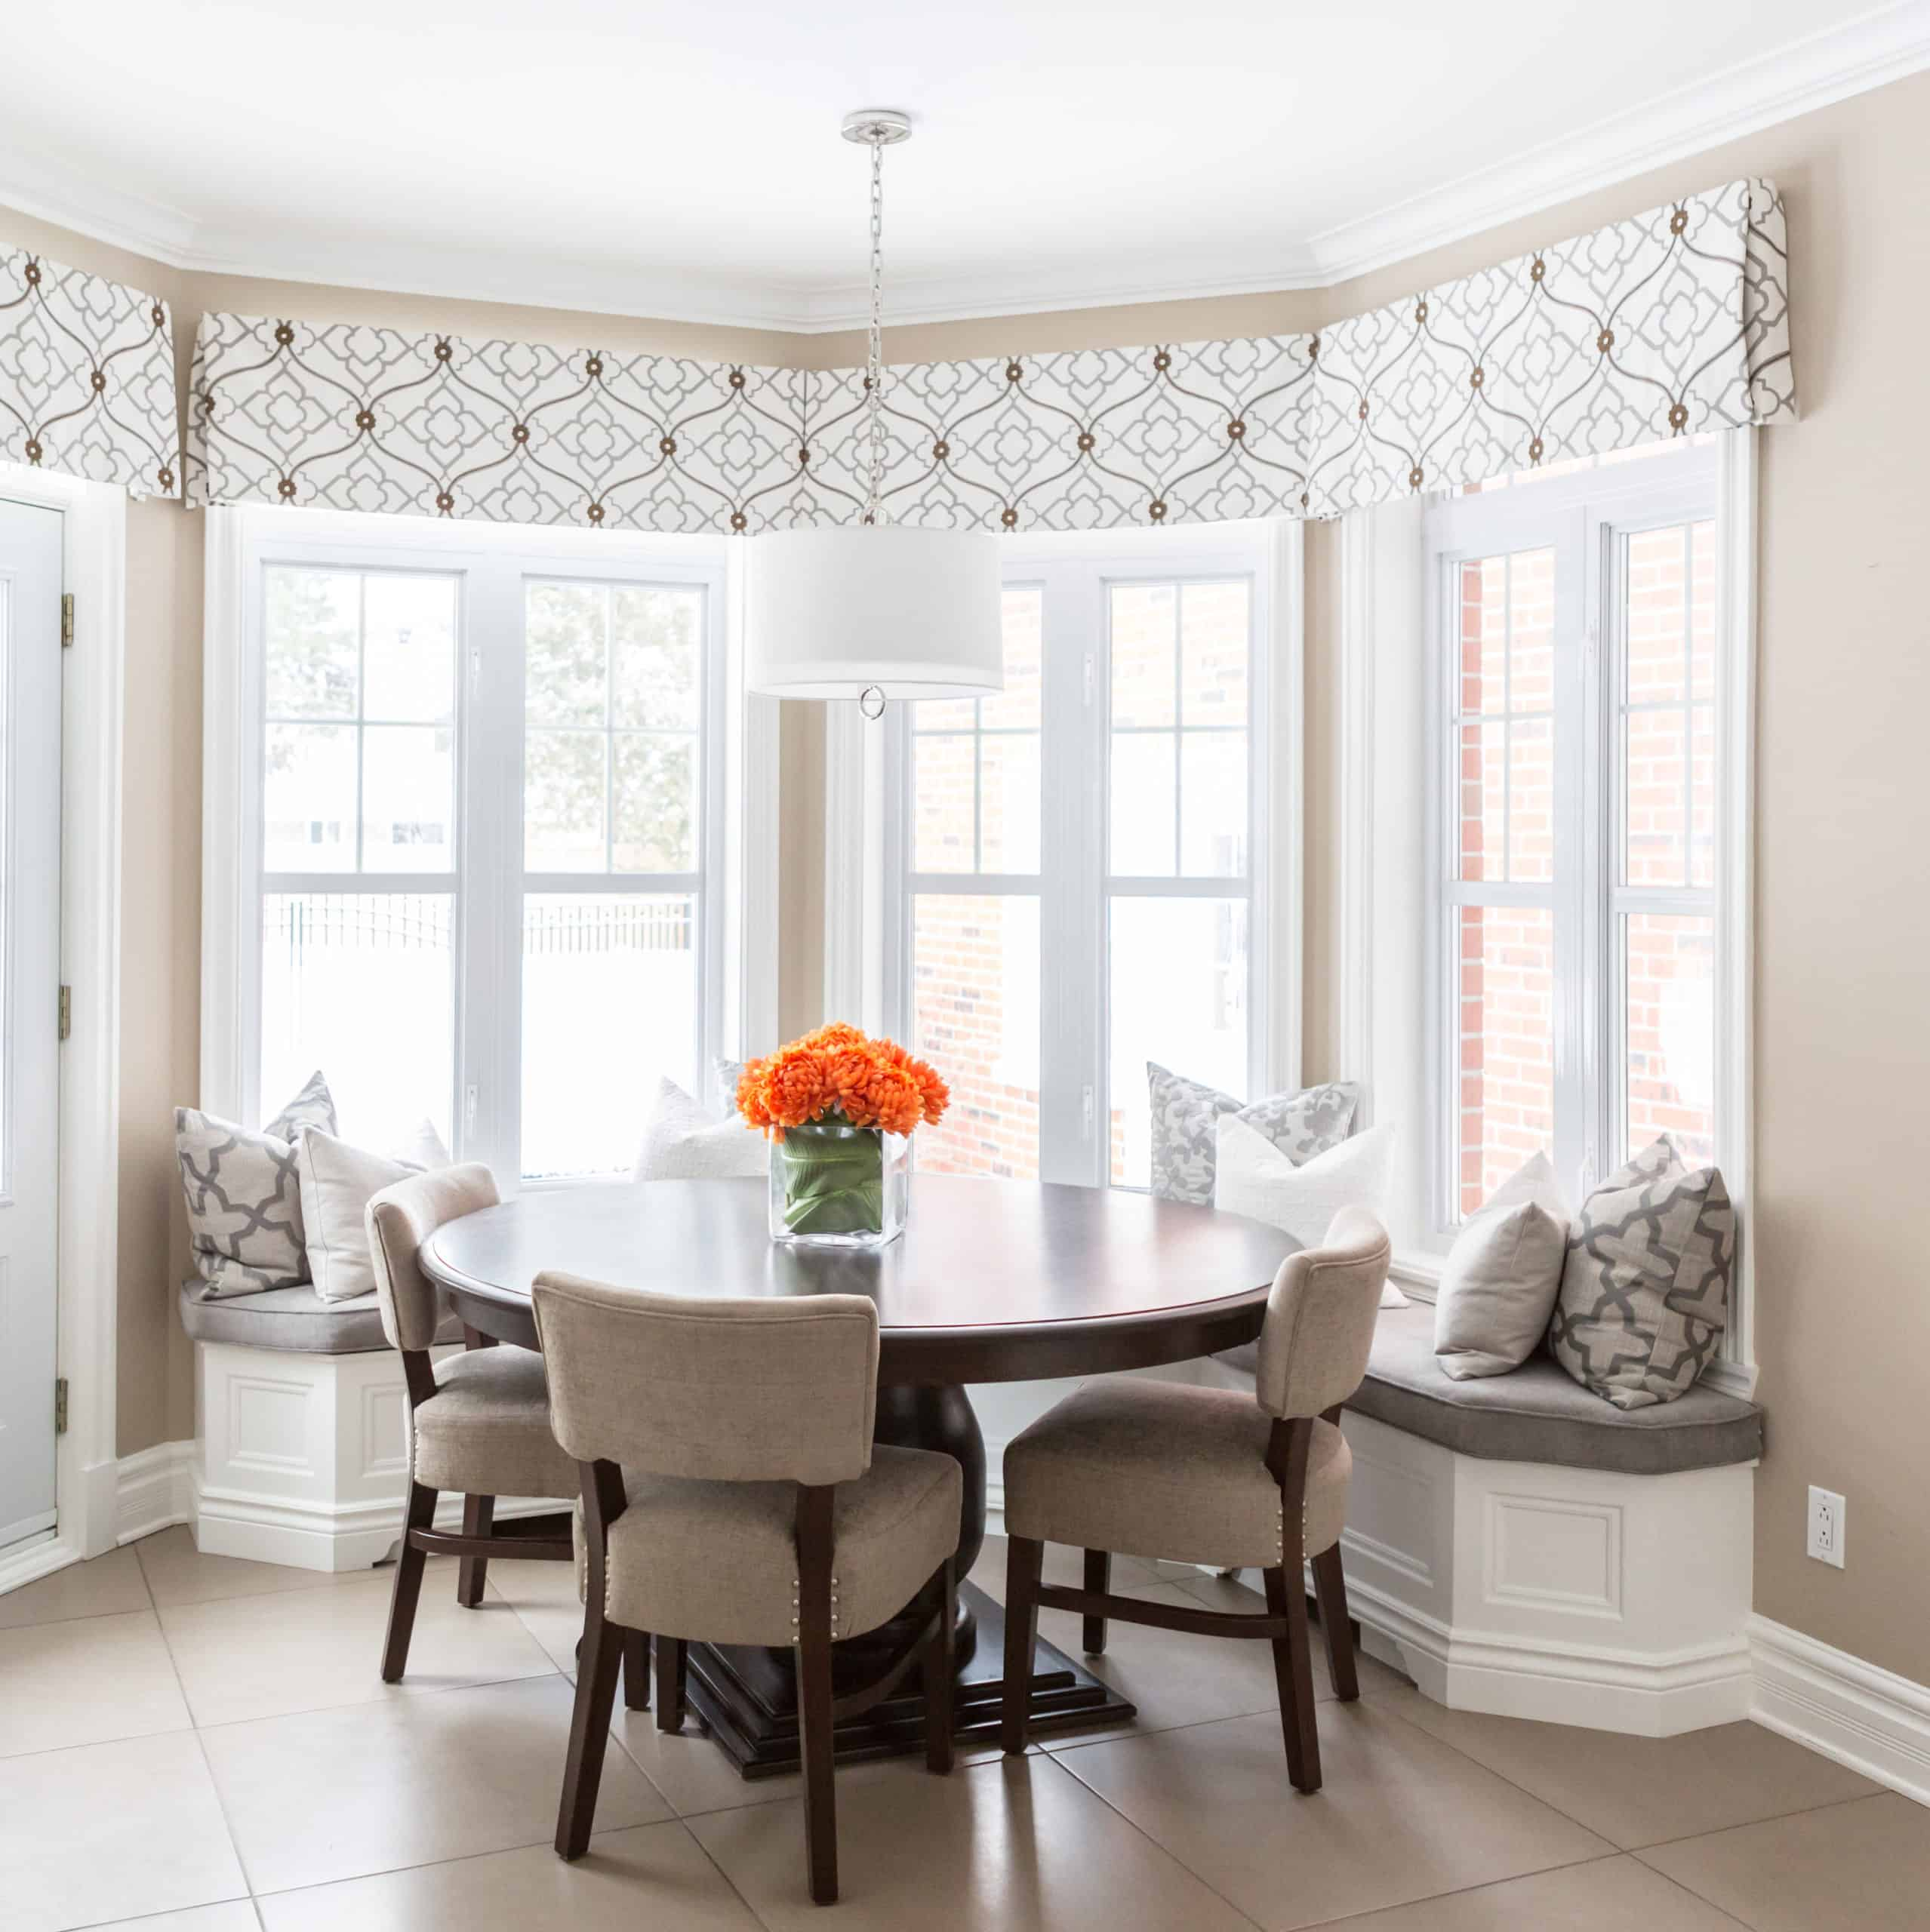 Dining room with orange flowers on the table